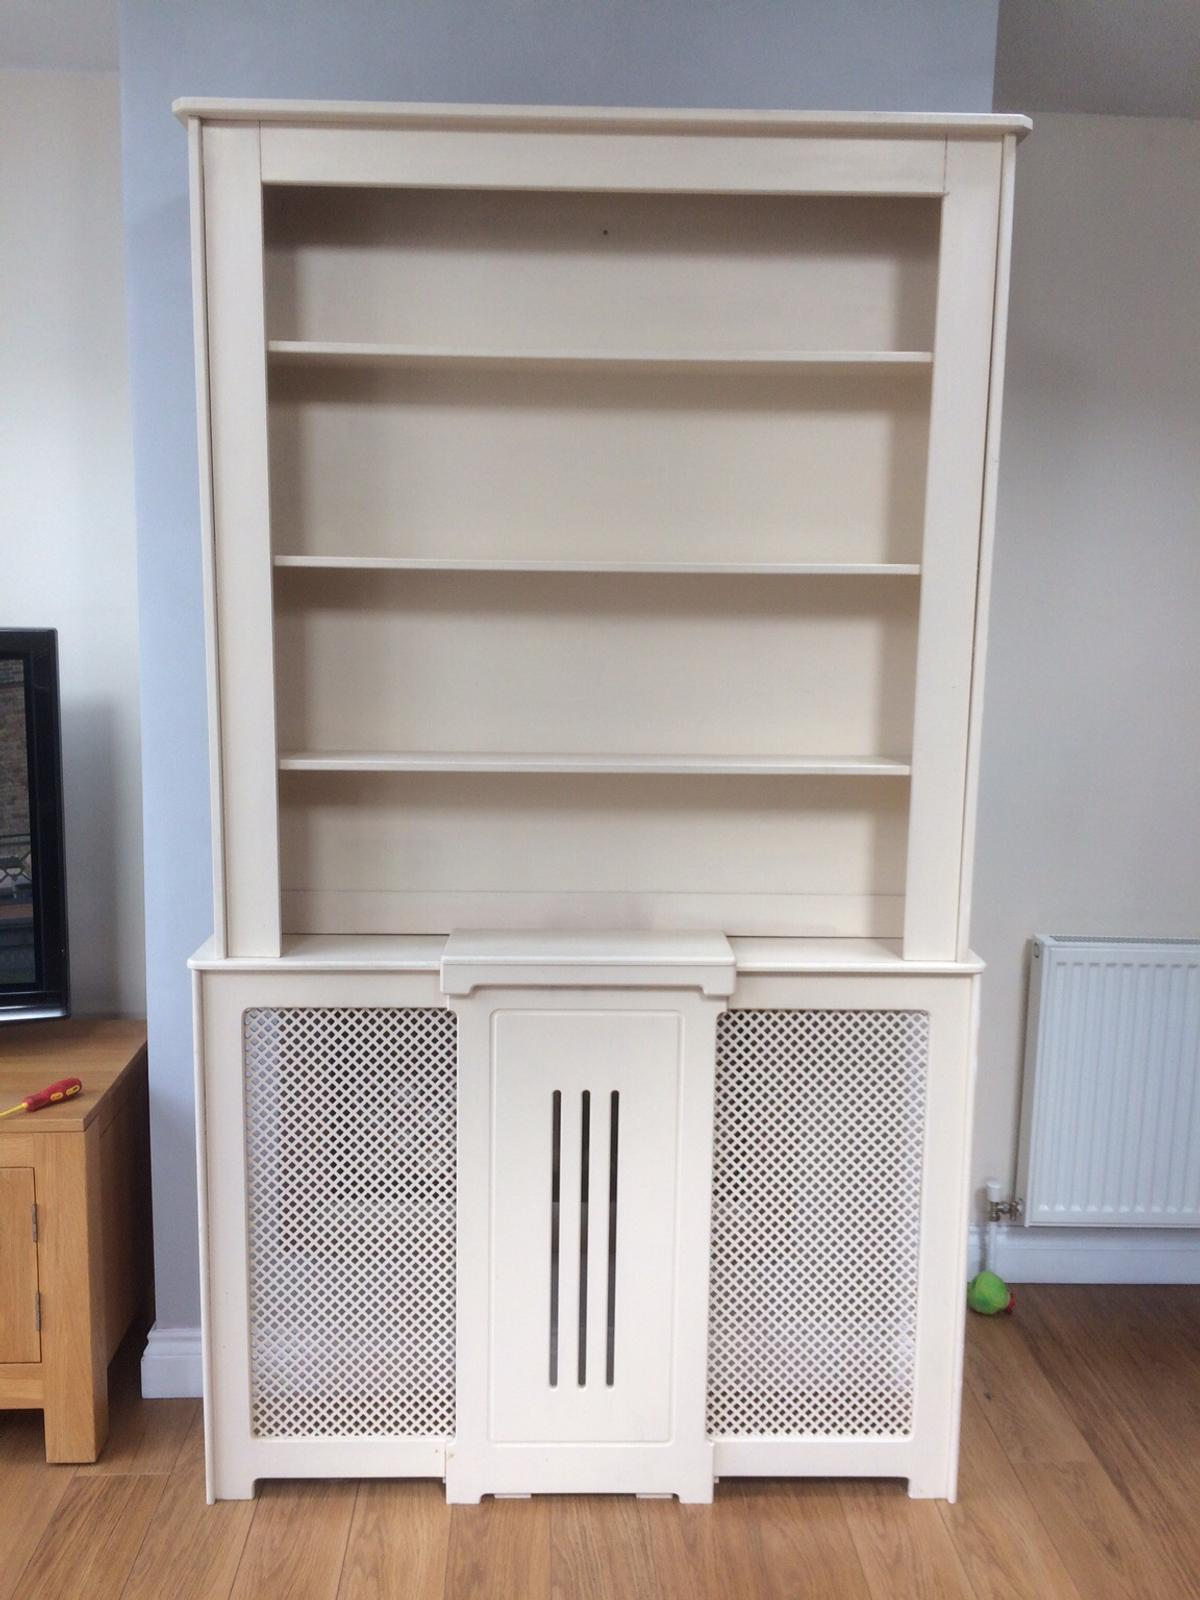 Mdf Radiator Cover And Bookcase In Sa5 Swansea For 25 00 For Sale Shpock